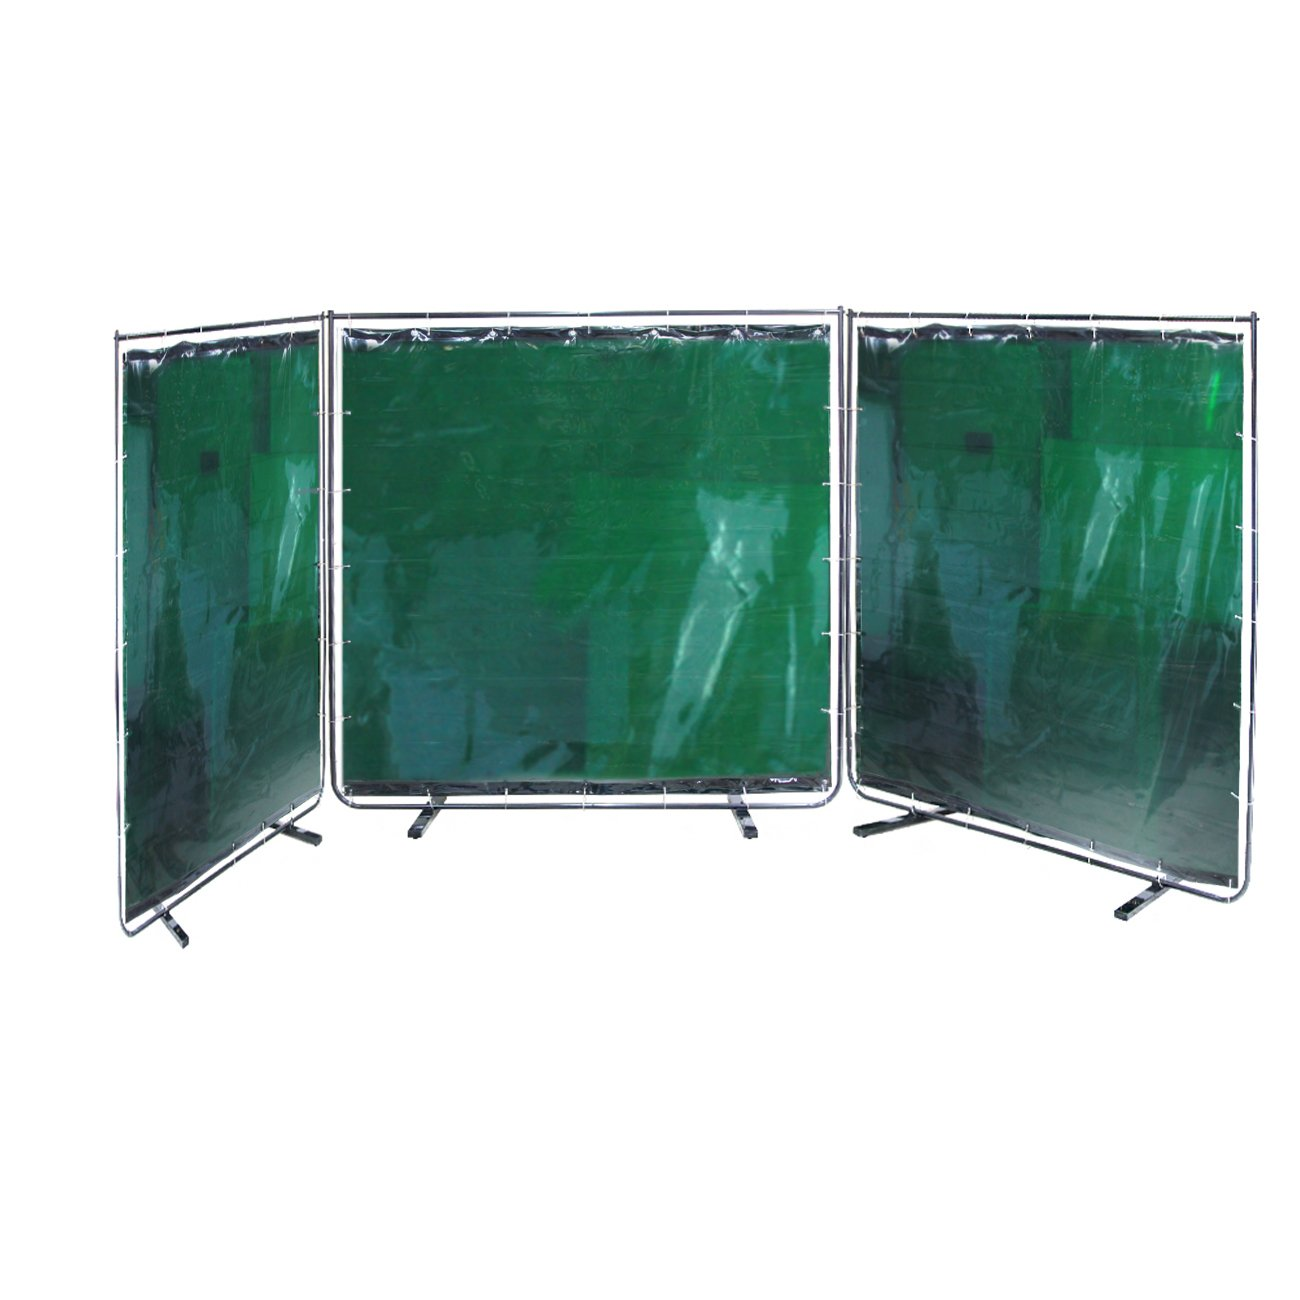 VIZ-PRO 3 Panel Green Vinyl Welding Curtain / Welding Screen With Frame, 6' x 6'